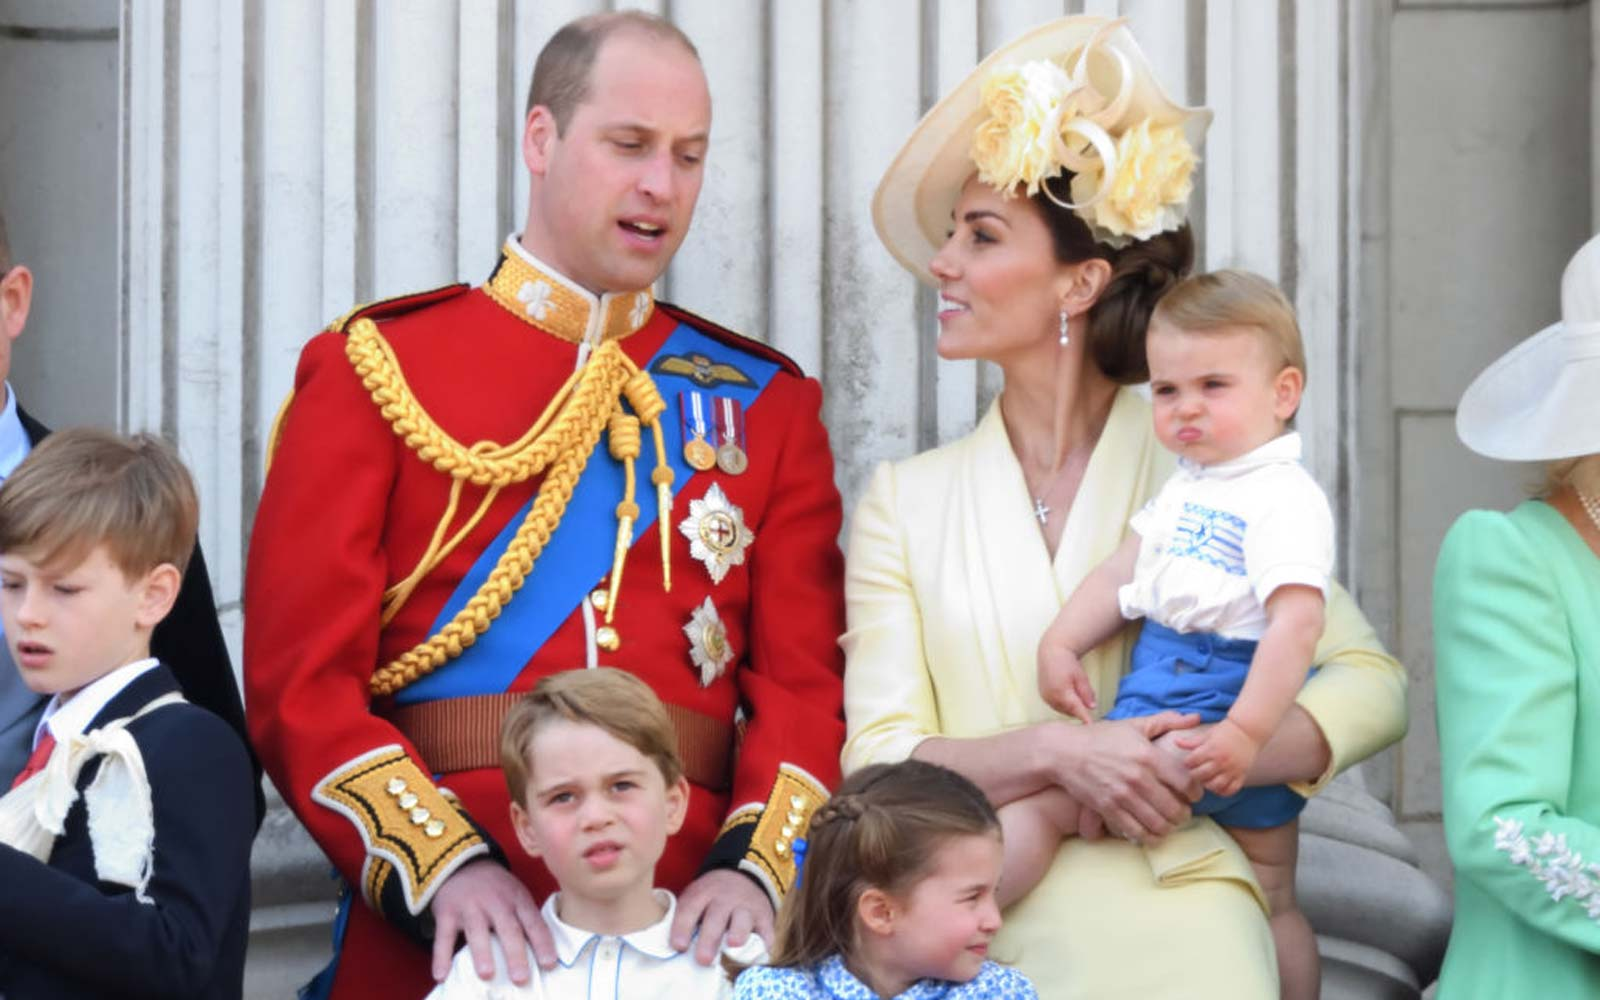 Prince William Was Asked How He'd React If His Kids Came Out as Gay — and He Had the Best Response